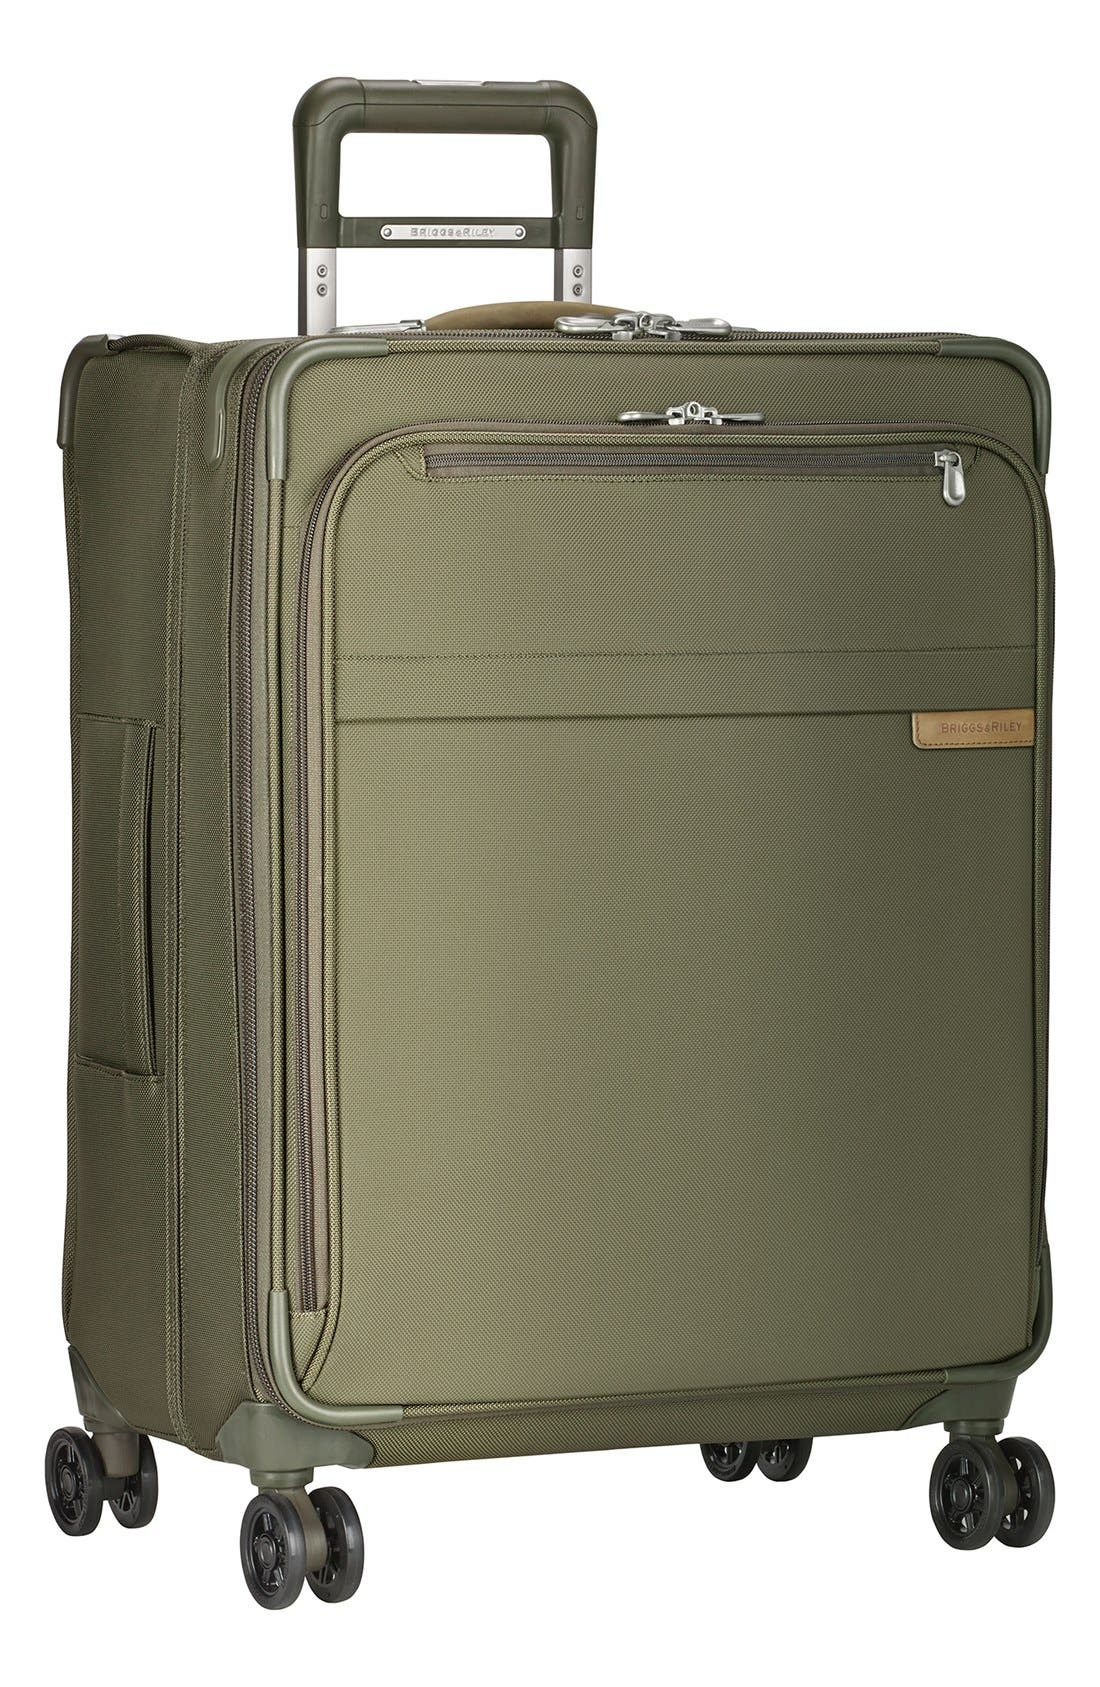 Alternate Image 1 Selected - Briggs & Riley 'Baseline' Medium Expandable Rolling Packing Case (25 Inch)